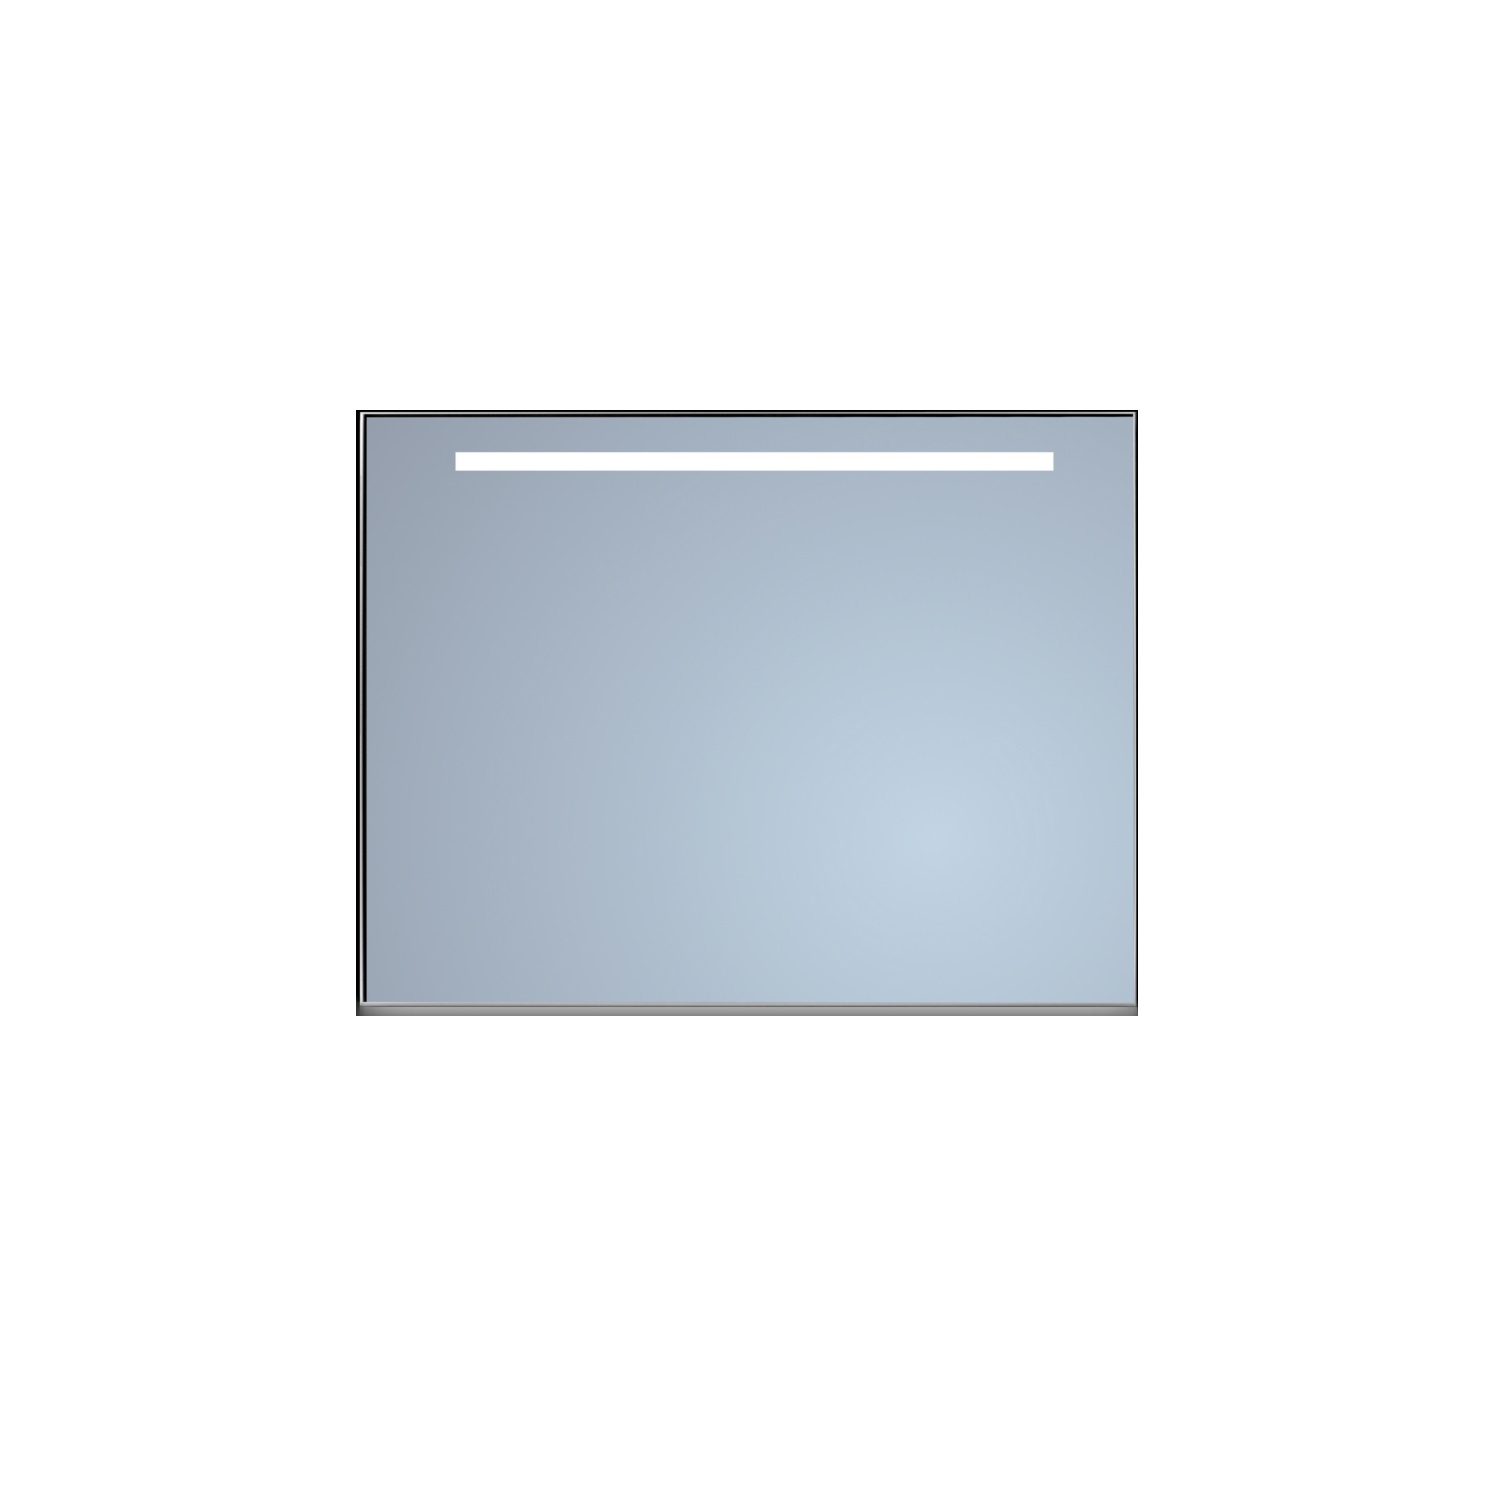 Badkamerspiegel Sanicare Q-Mirrors Ambiance en 'Cold White' LED-verlichting 70x65x3,5 Chroom Omlijsting